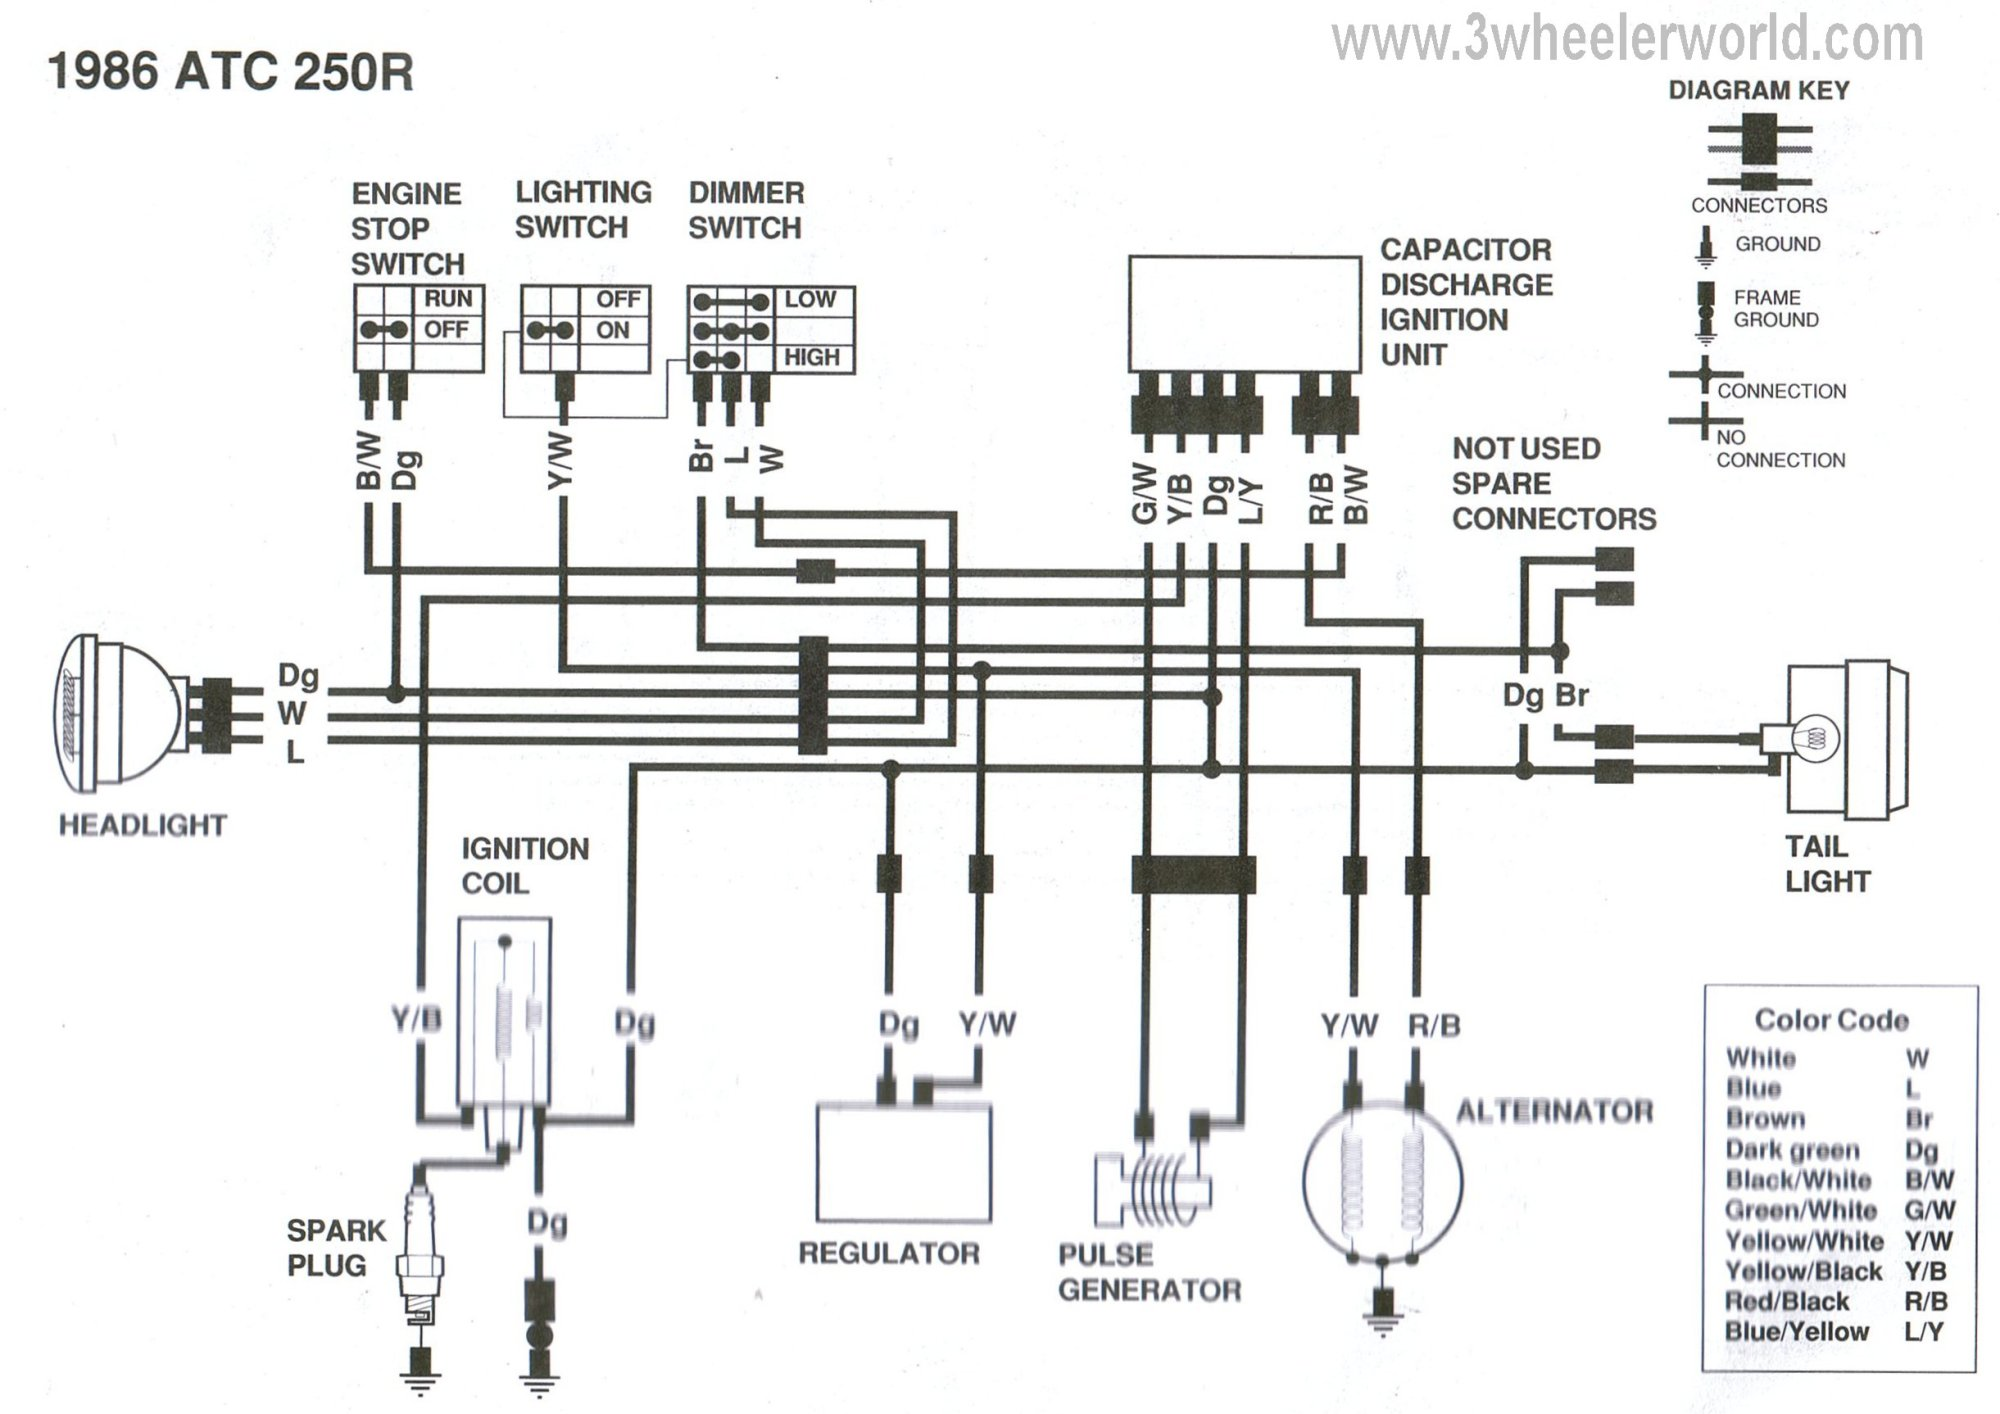 hight resolution of 1986 honda fourtrax 350 wiring diagram schematic wiring diagram world 86 honda fourtrax 350 wiring diagram 1986 honda fourtrax 350 wiring diagram